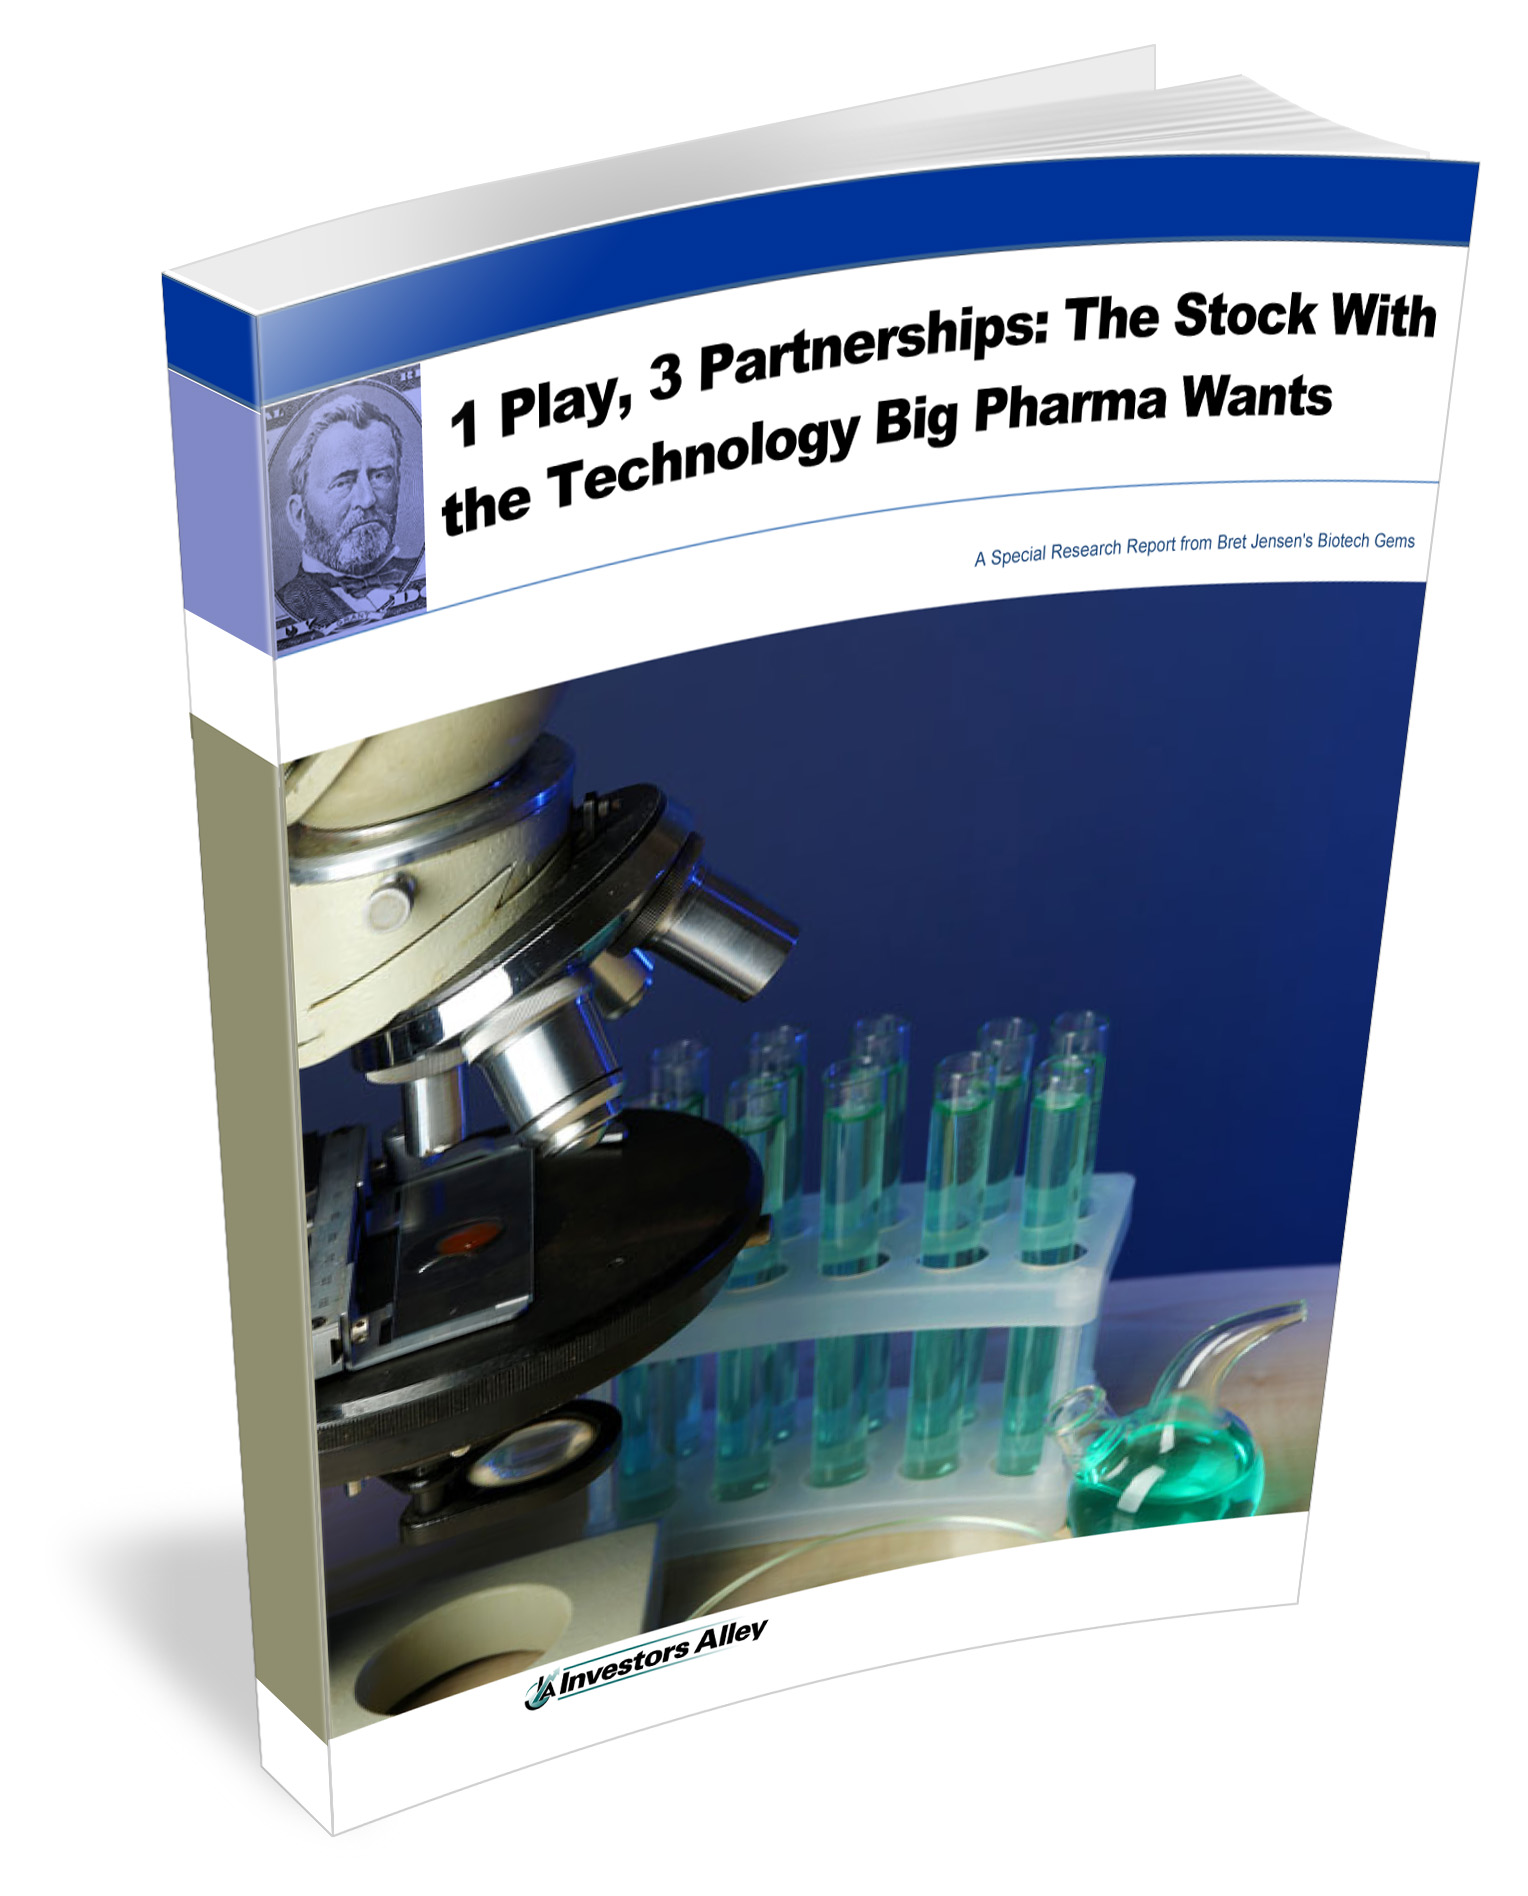 report-cover-btg-1-play-3-partnerships